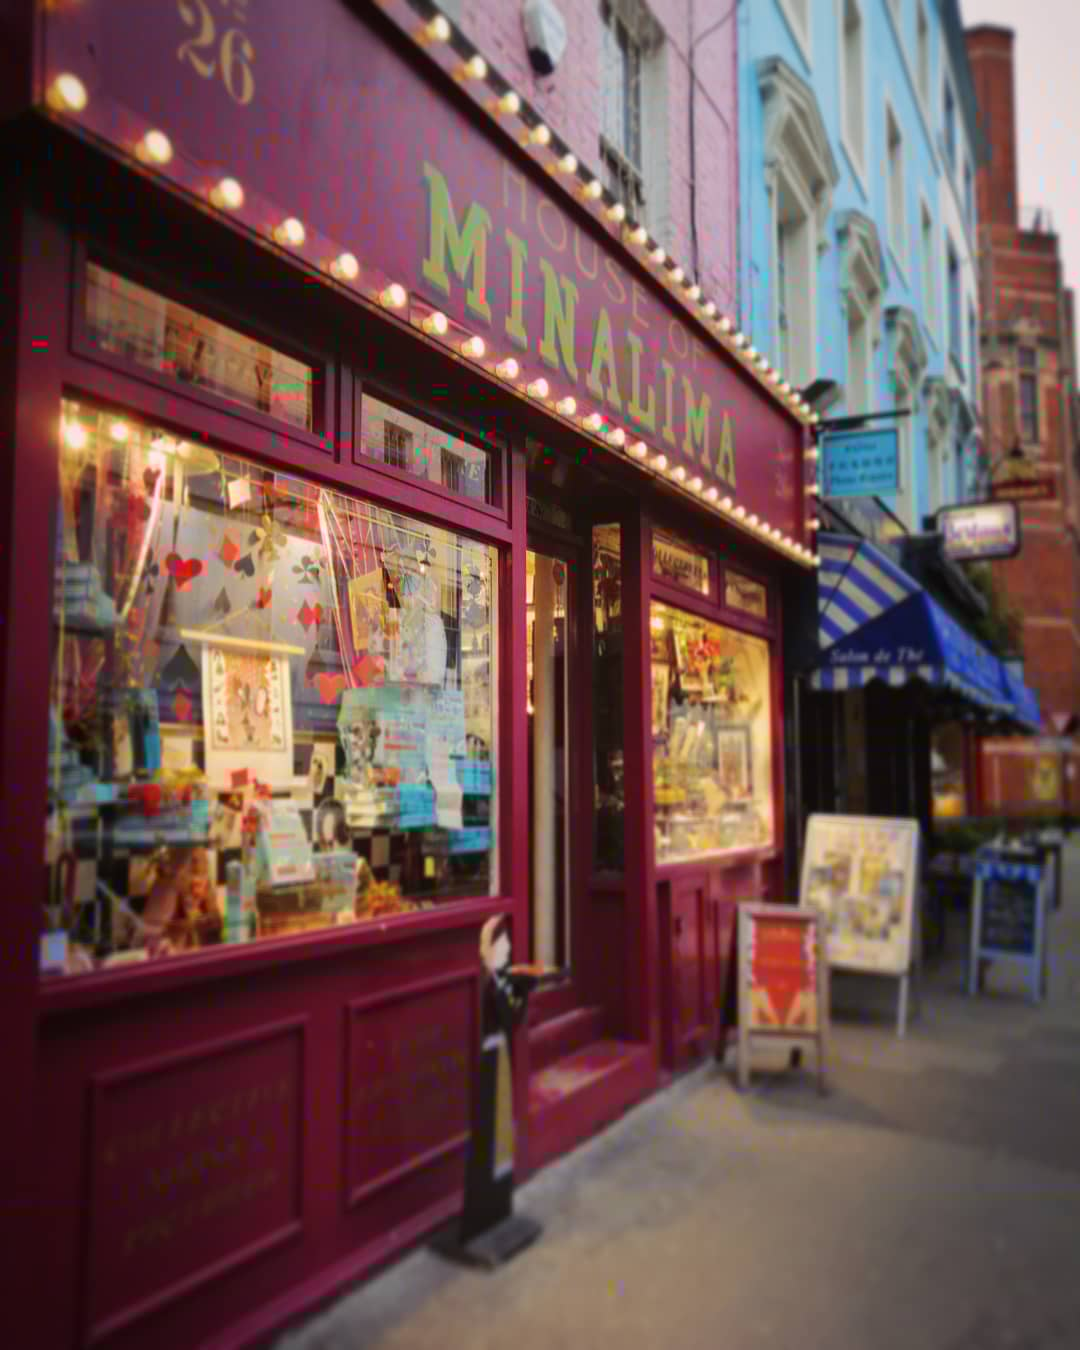 House of MinaLima looks like it could easily fit between the shops of Diagon Alley.